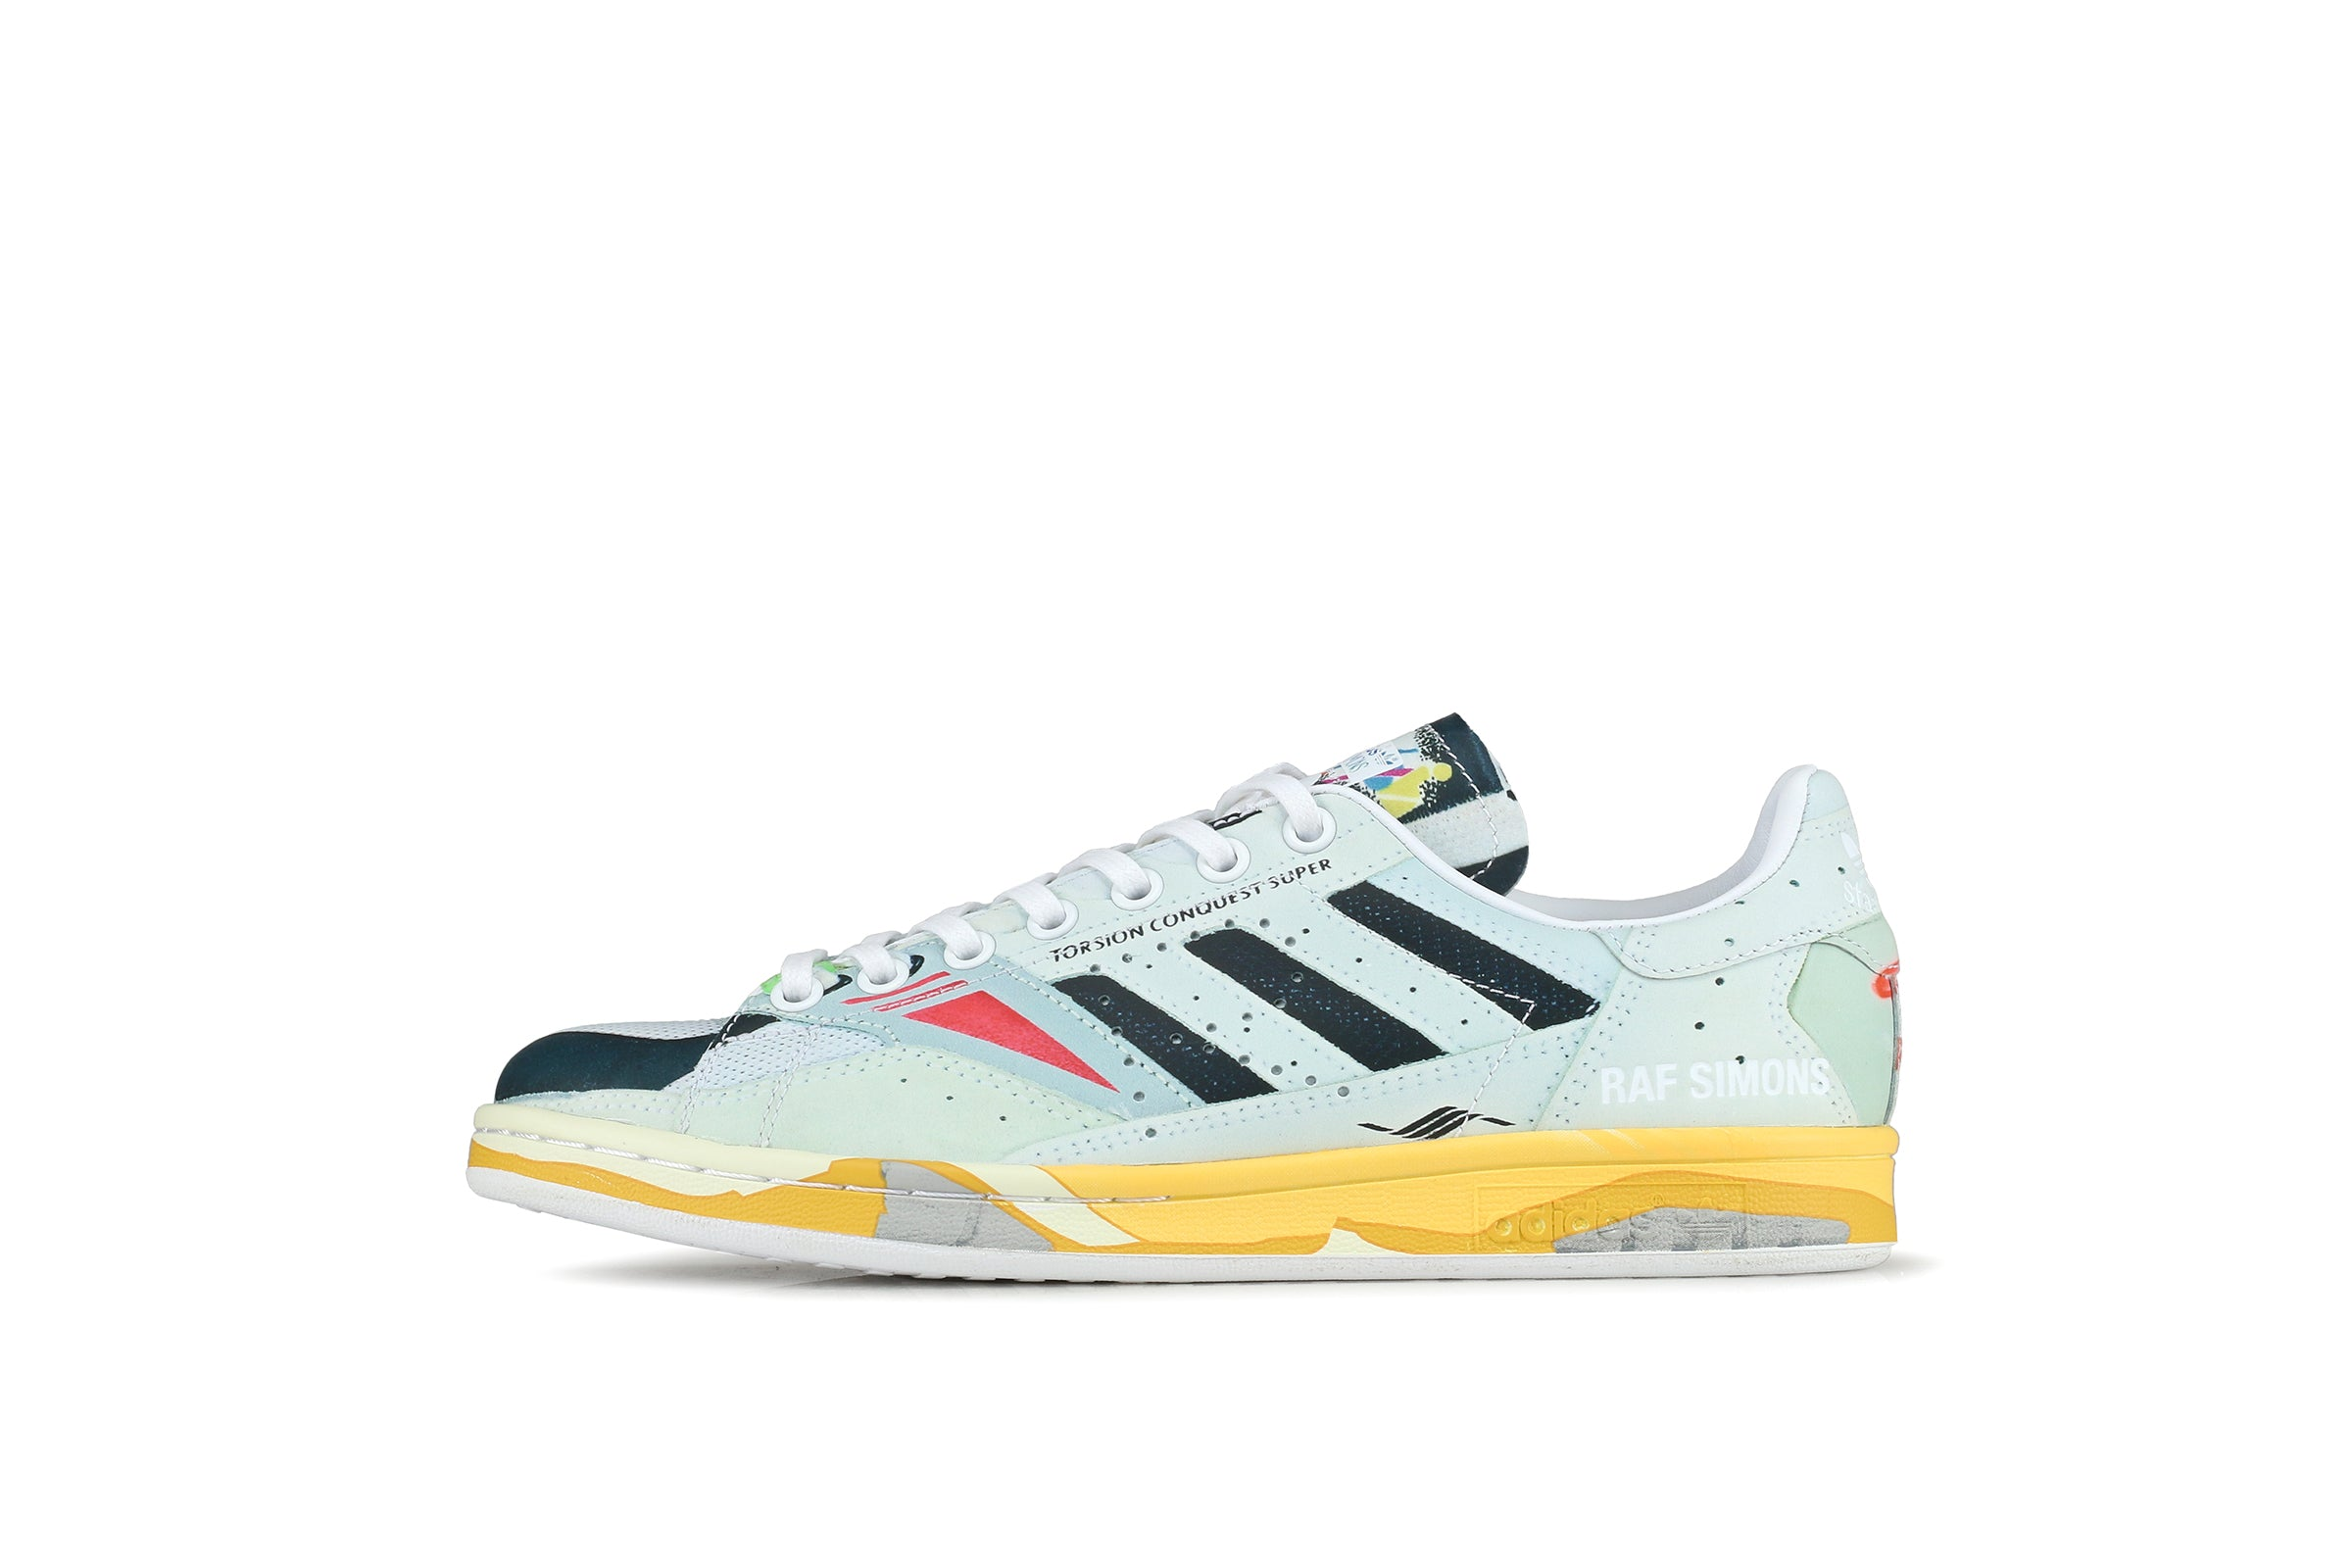 e64b1f04930ce Adidas Torsion Stan Smith x Raf Simons